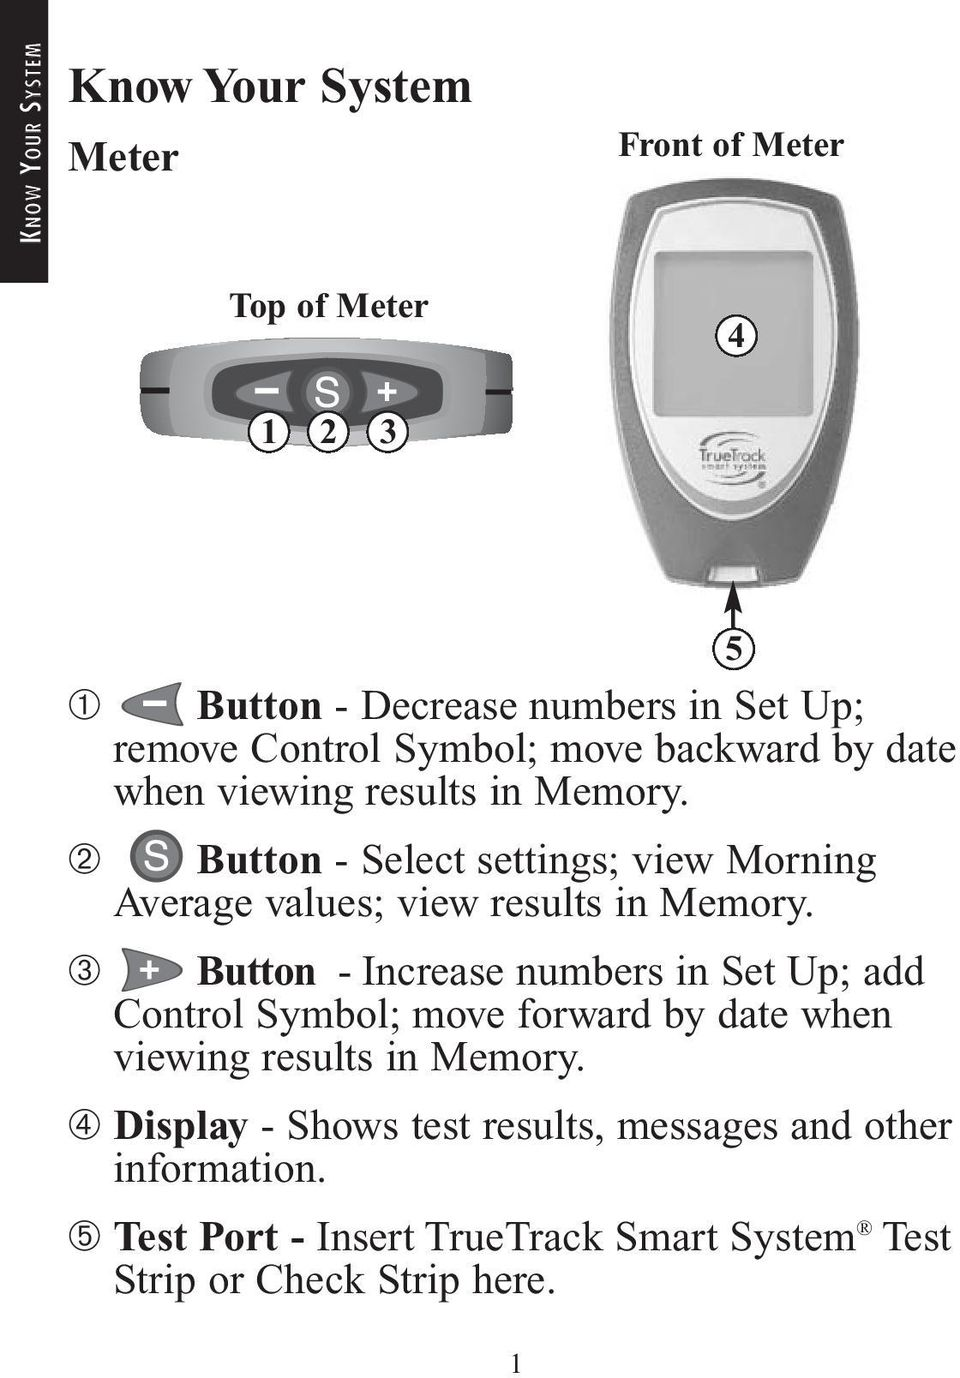 Button - Select settings; view Morning Average values; view results in Memory.